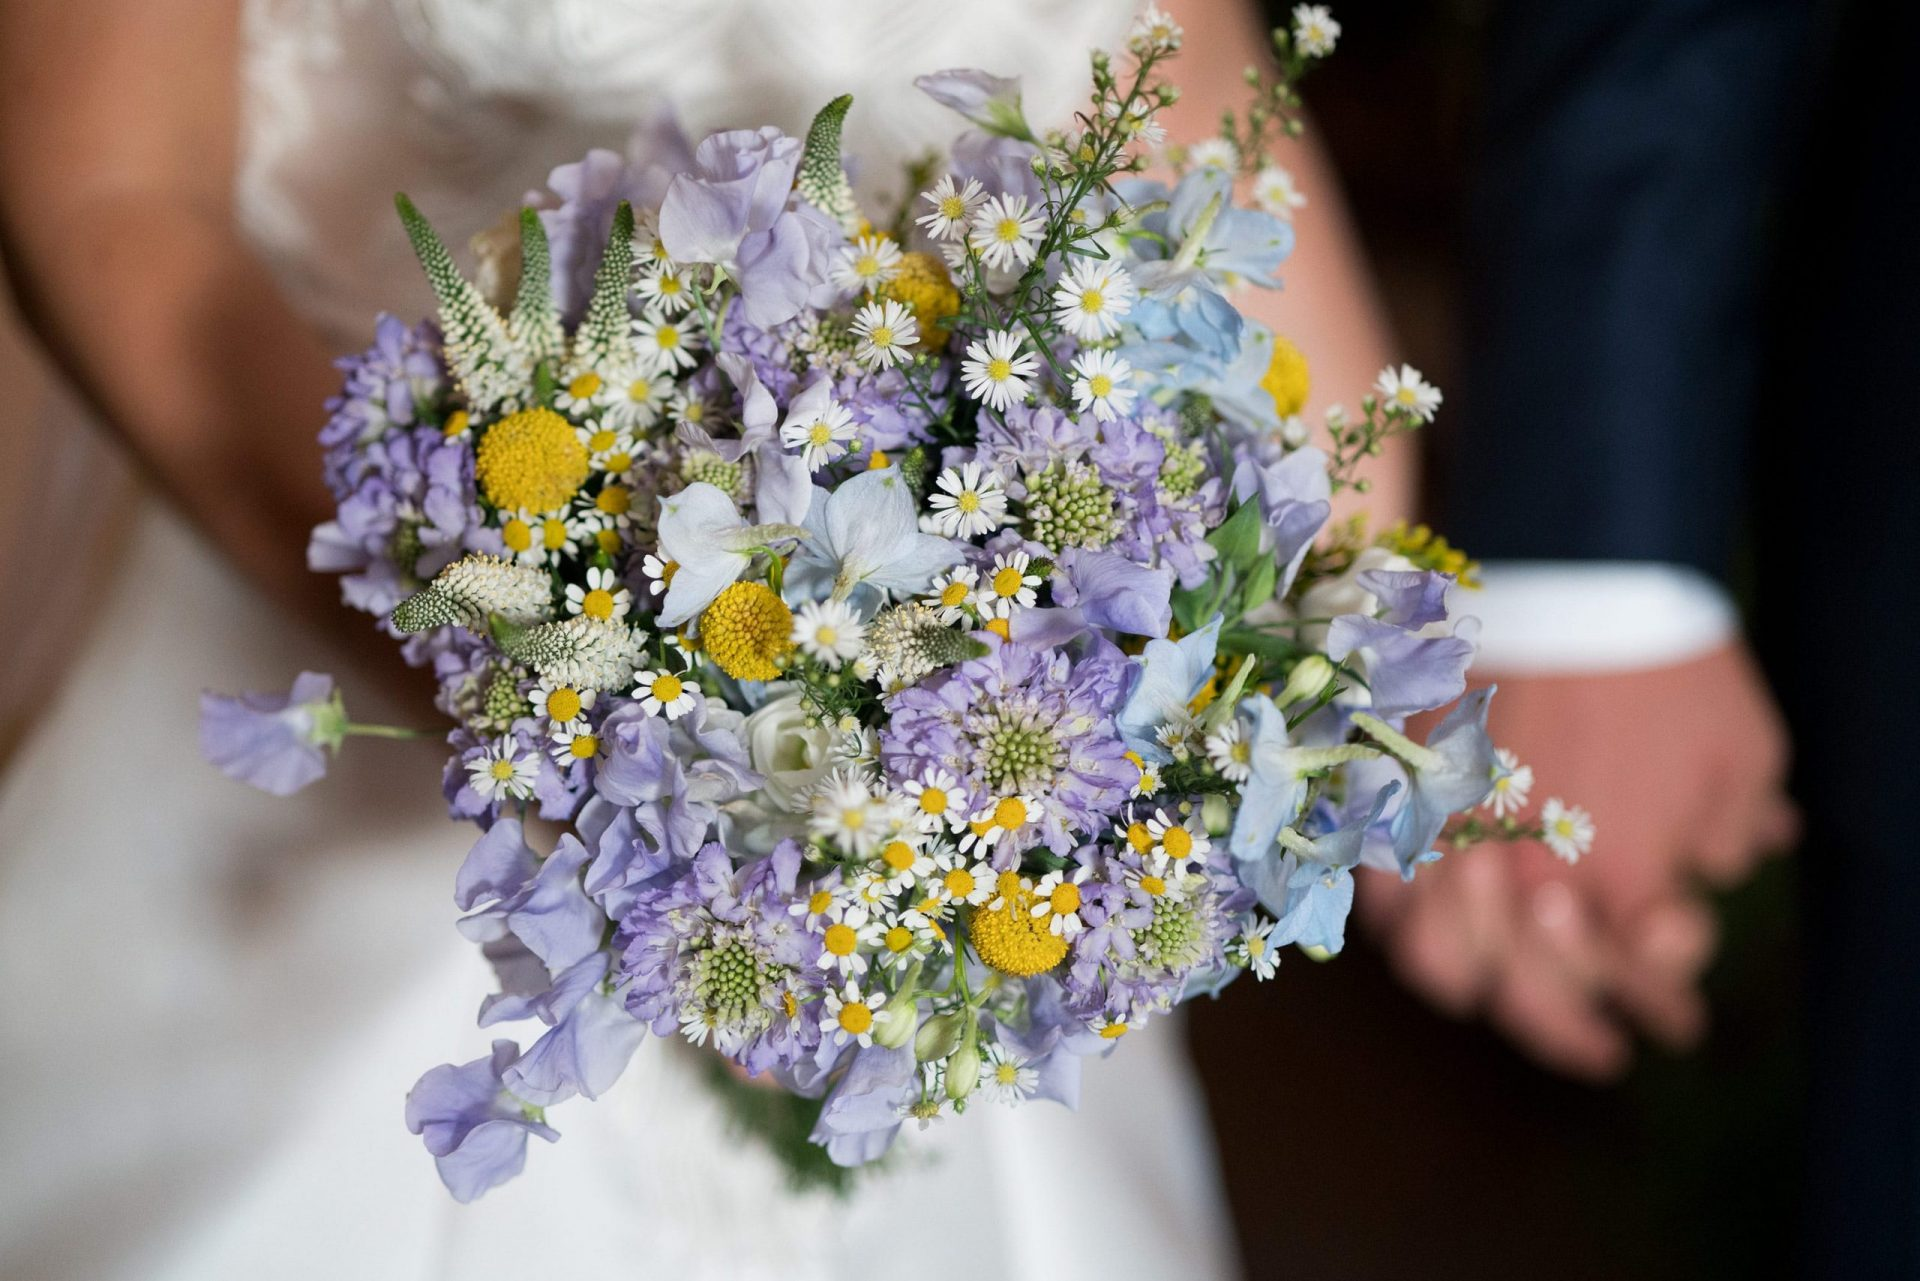 Sara and Leonardo, country garden wedding bouquet